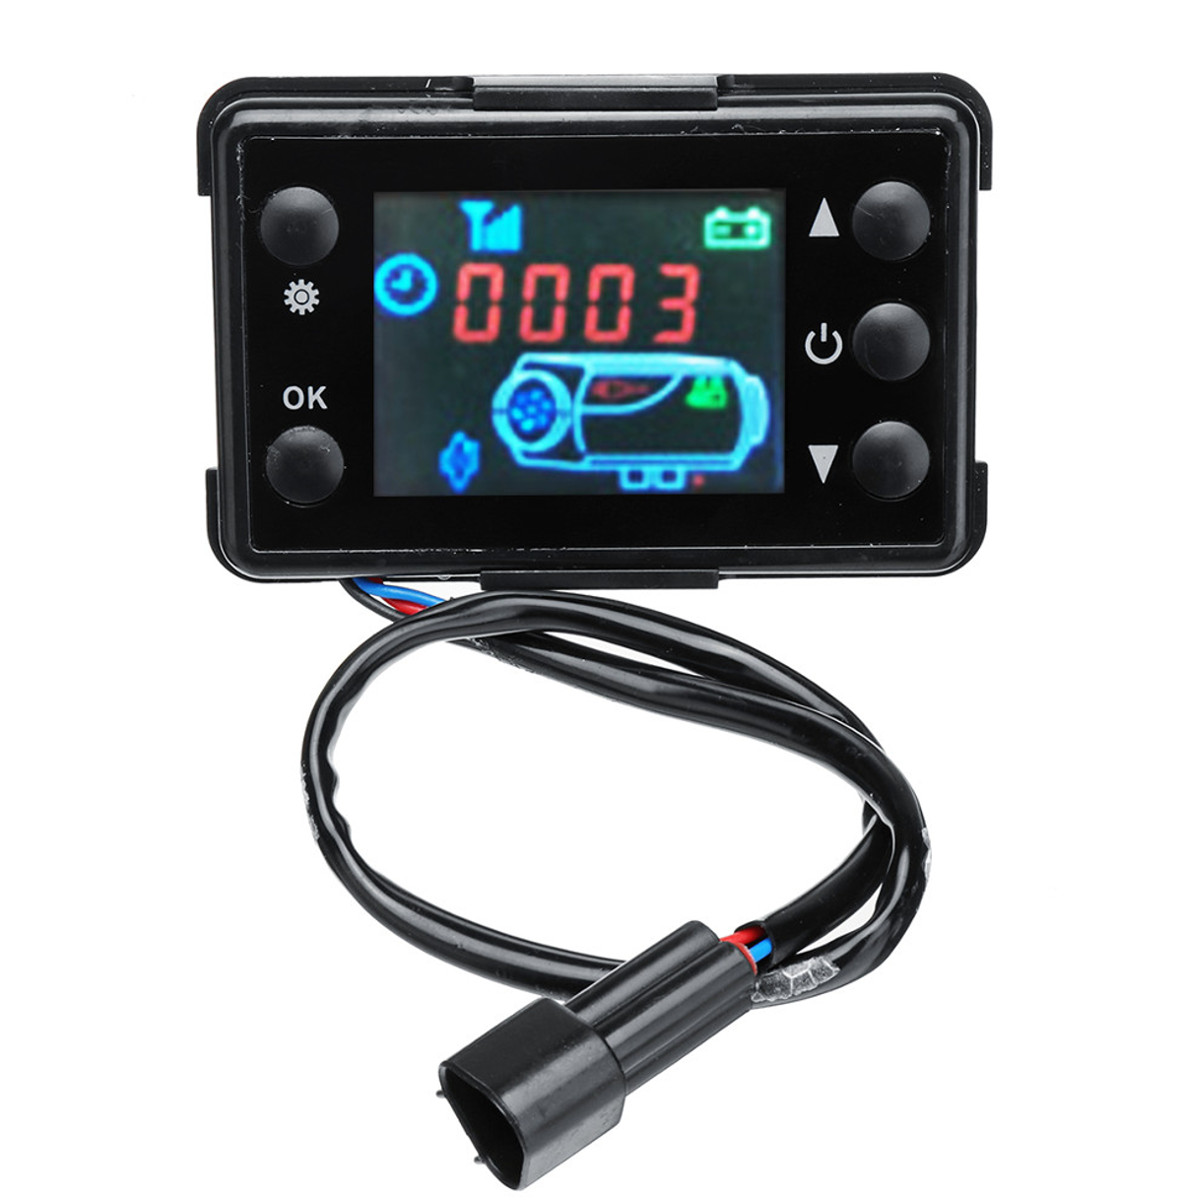 Automobiles & Motorcycles Atv,rv,boat & Other Vehicle Hospitable 12v/24v 3/5kw Lcd Monitor Parking Heater Switch Car Heating Device Controller Universal For Car Track Air Heater